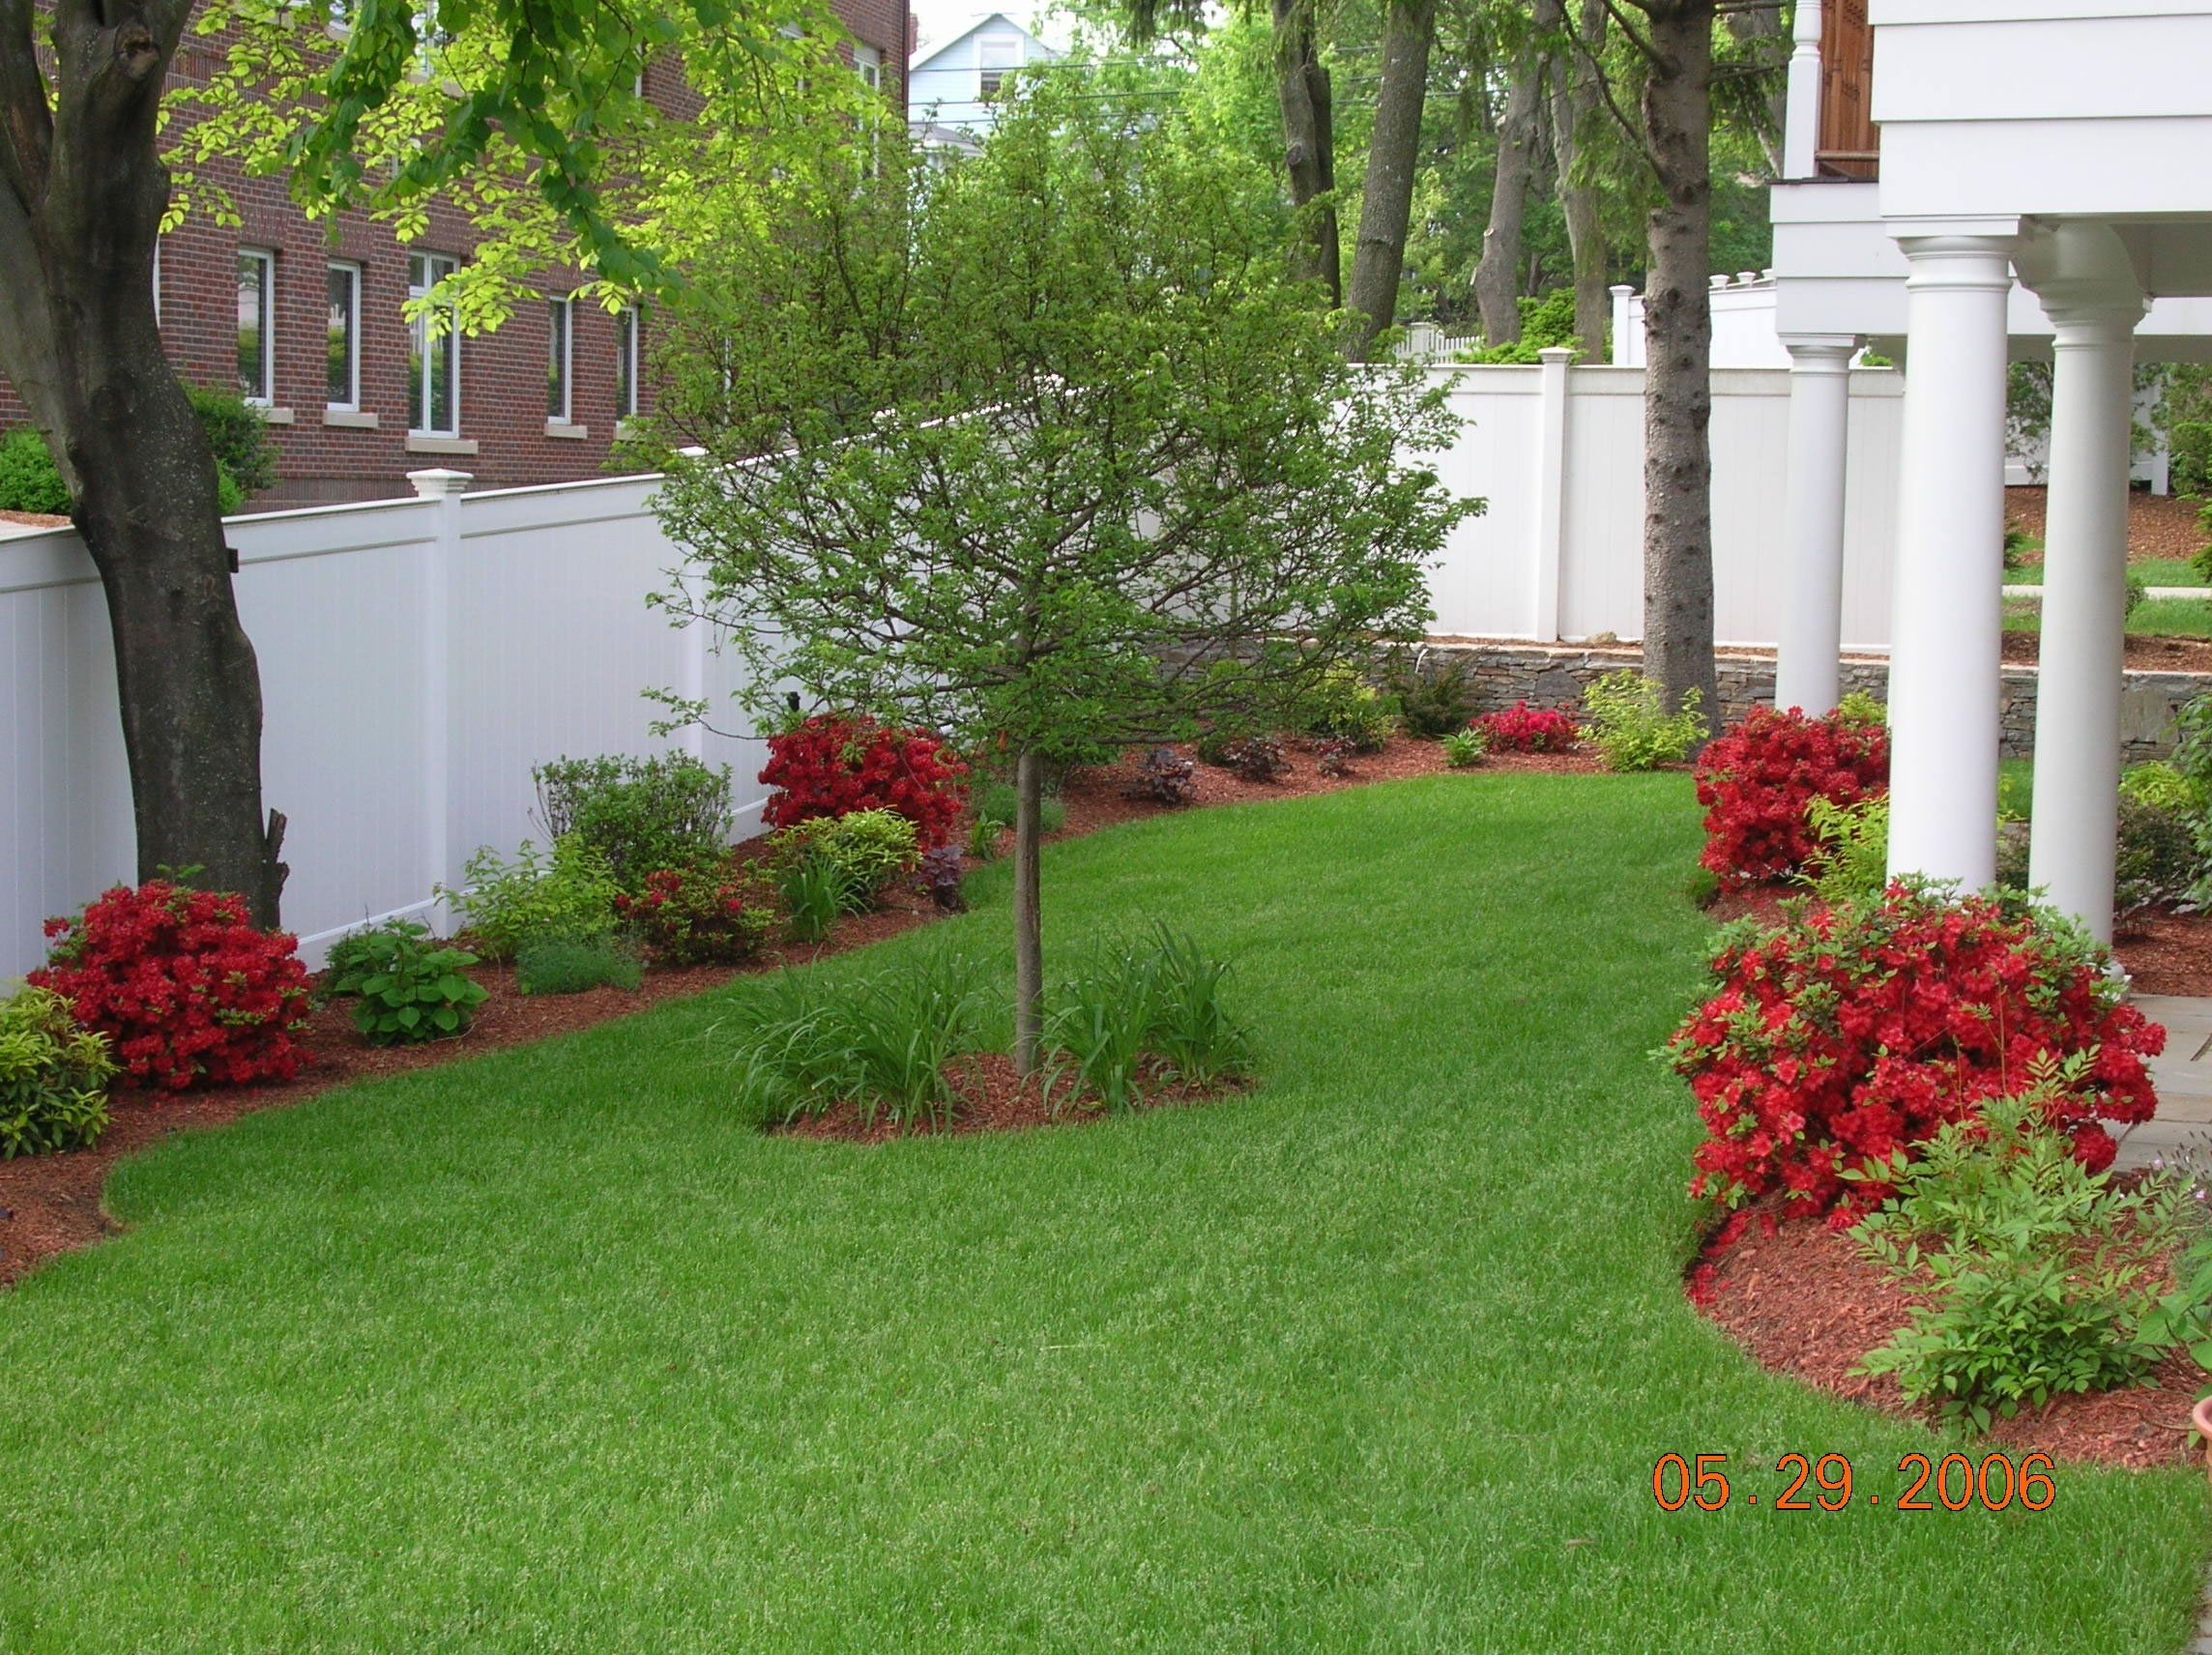 Top 10 simple diy landscaping ideas seek diy - Garden ideas diy ...